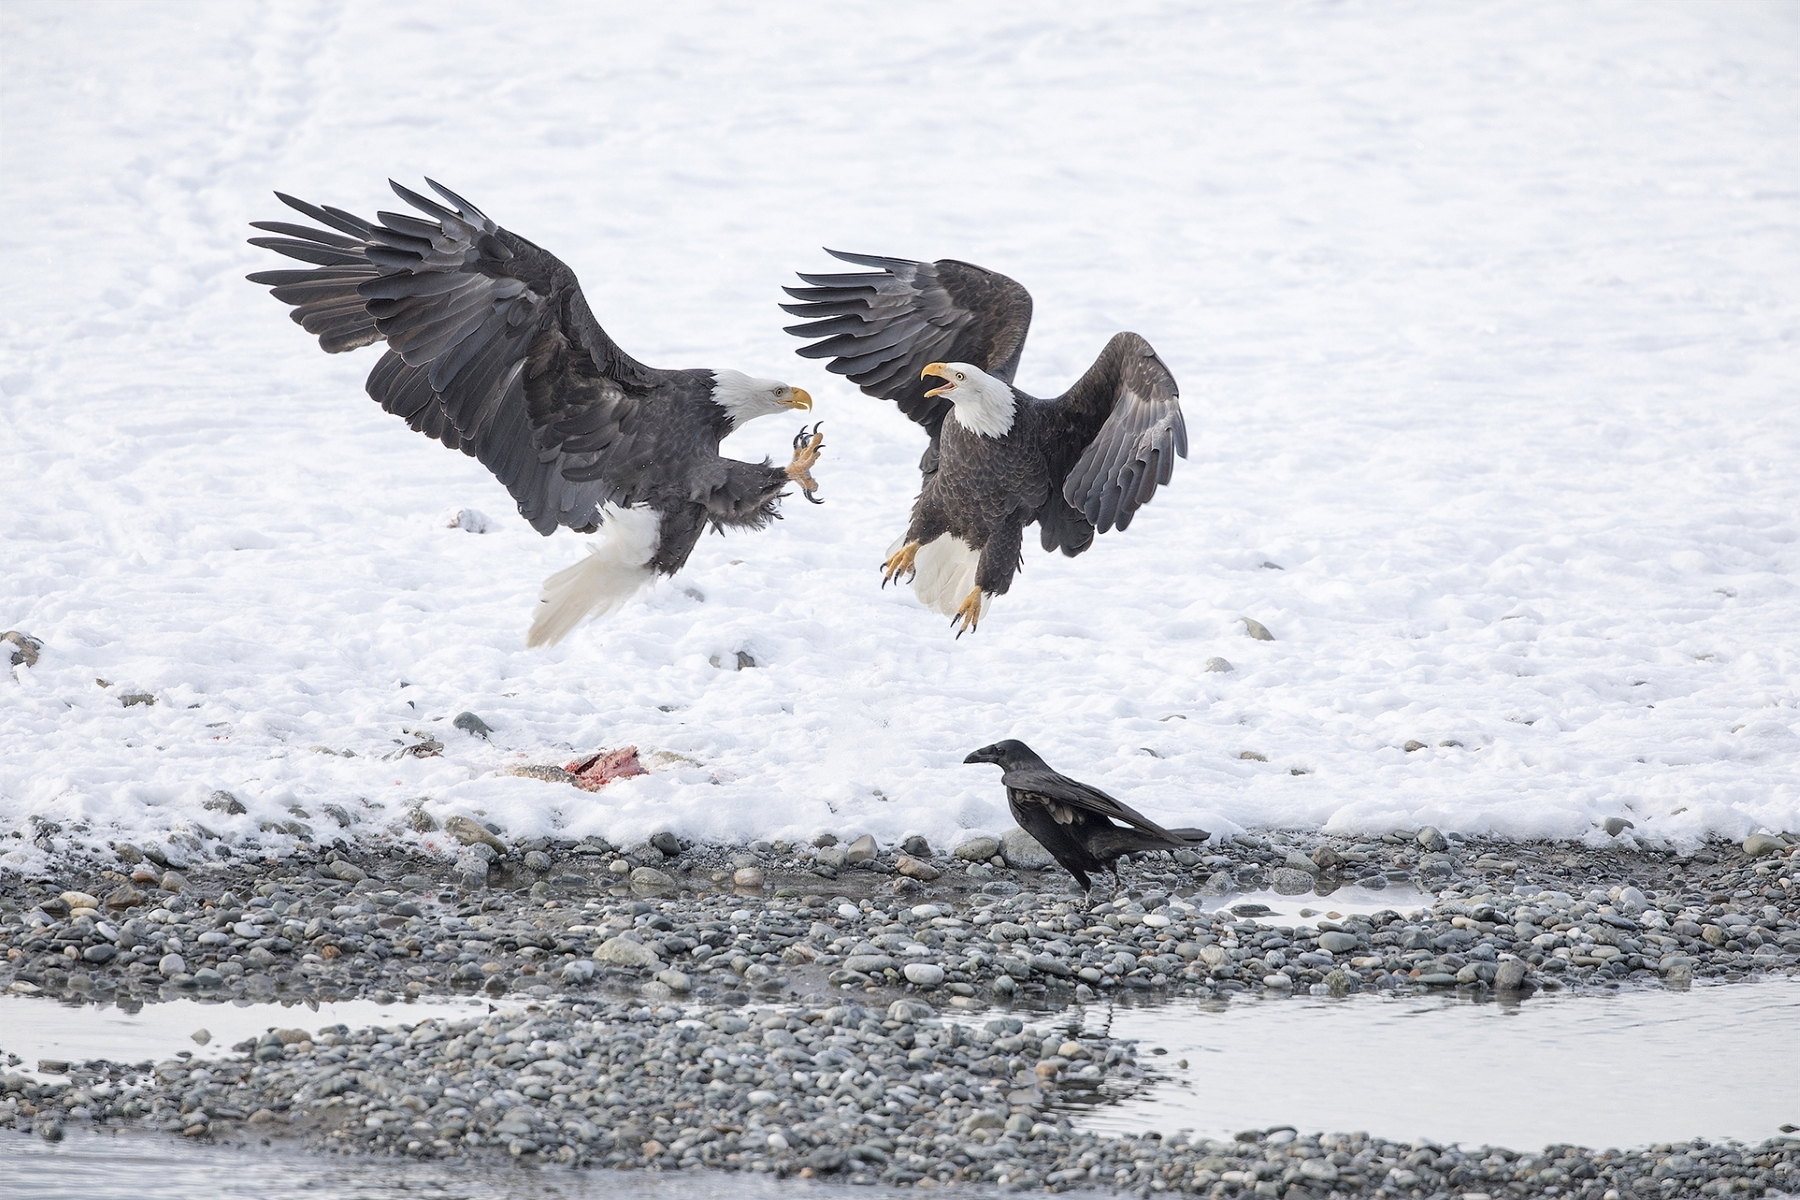 'A Bald Eagle comes in to take the salmon, the Northwestern Crow is ready to get pieces' (NA Best in Show) by Clarence Luckett - LV